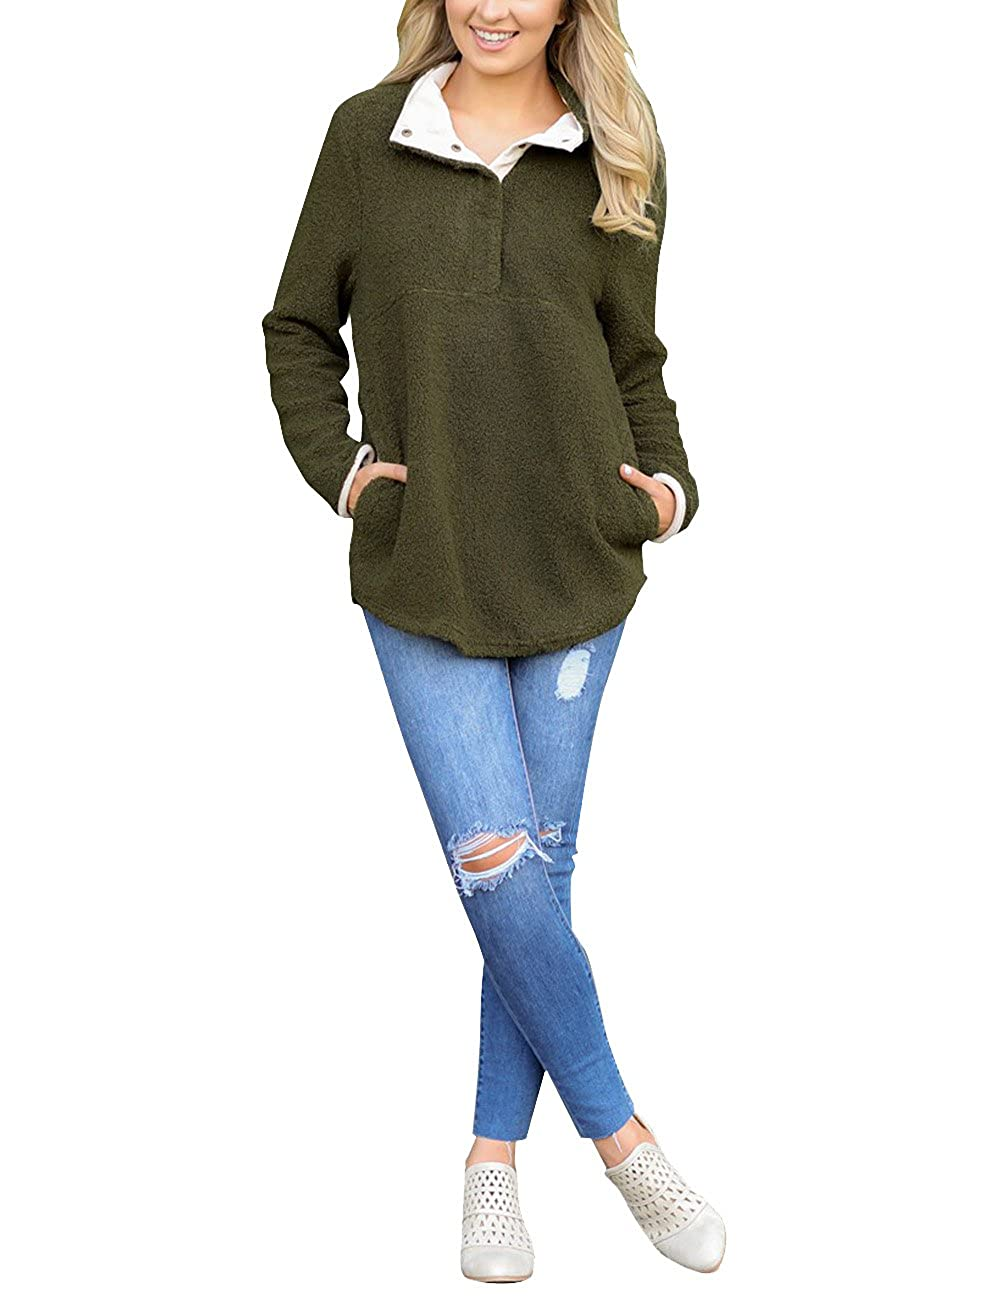 eaf46cc0dcf4 GRAPENT Women s Casual Long Sleeves Stand Collar Buttons Pockets ...